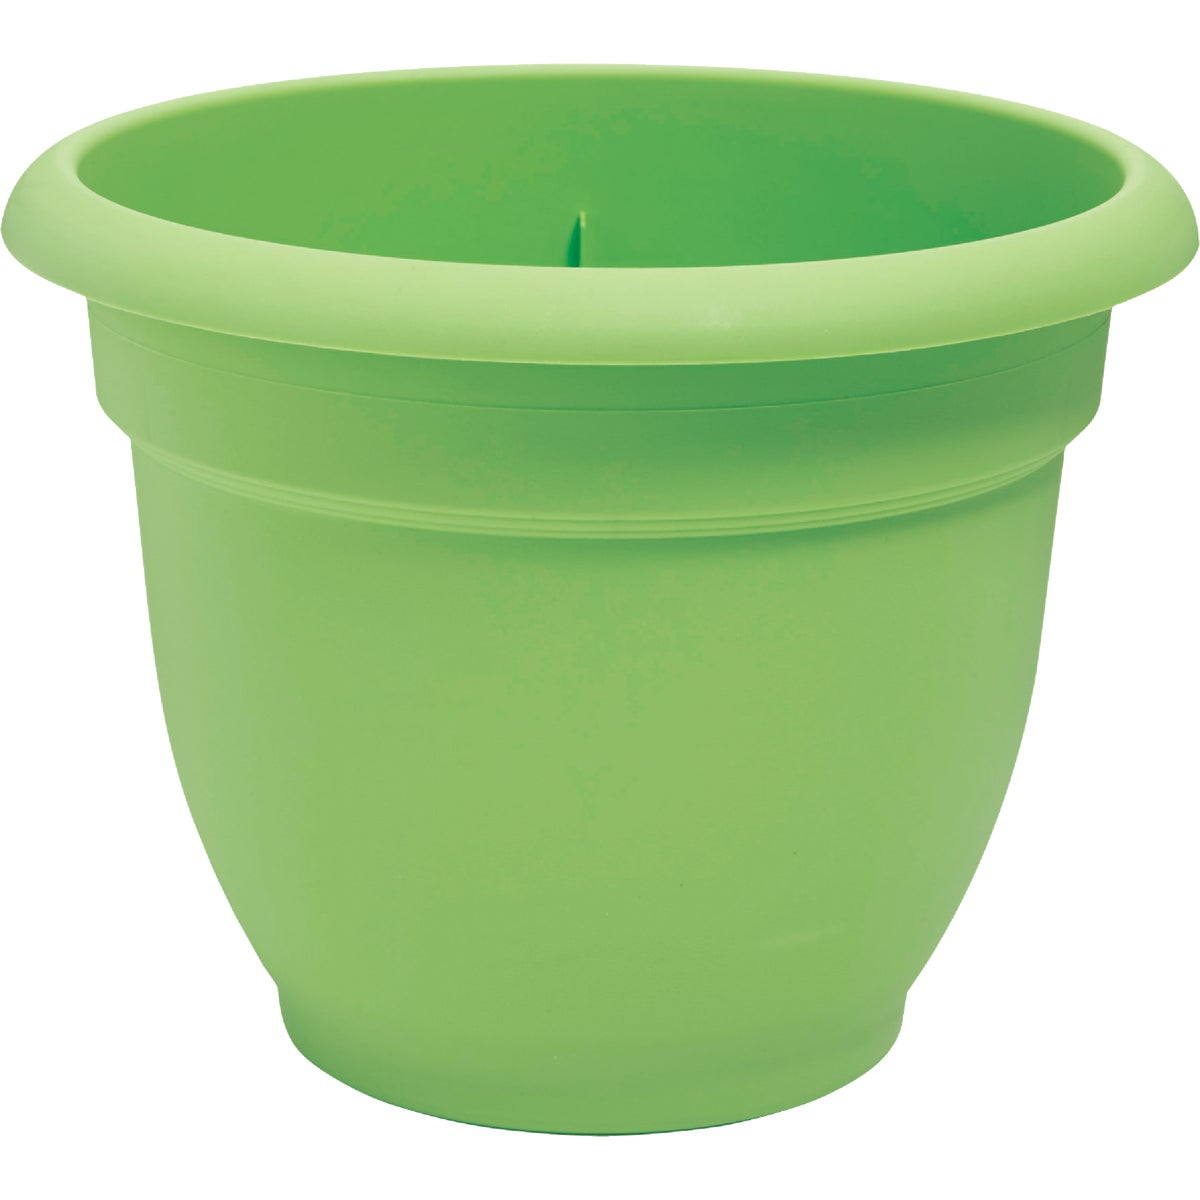 "12"" PERIDOT ARIANA POT - 465120-1001 by Fiskars Brands Inc"